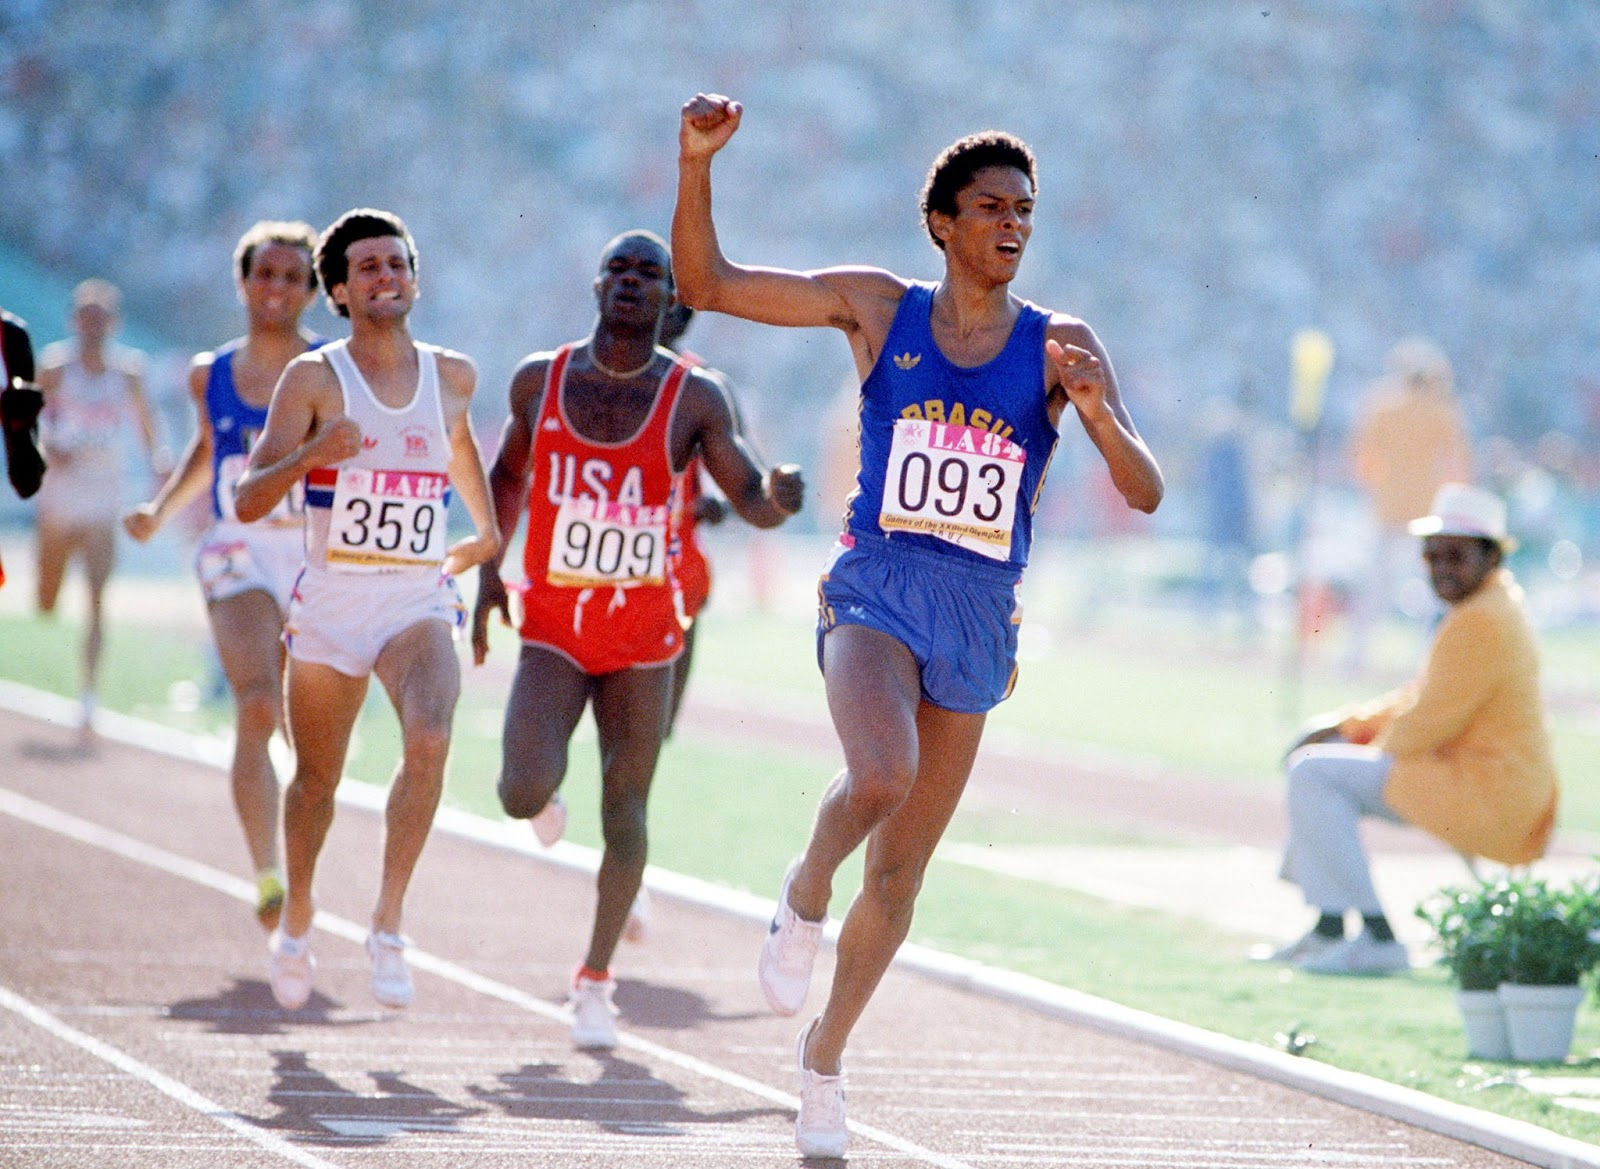 Training A 405 High School Miler North Shore Country Day Circuit Workouts Oregon Curcuit Workout Ass Joaquim Cruz Winning Gold At 800m In 1984 La